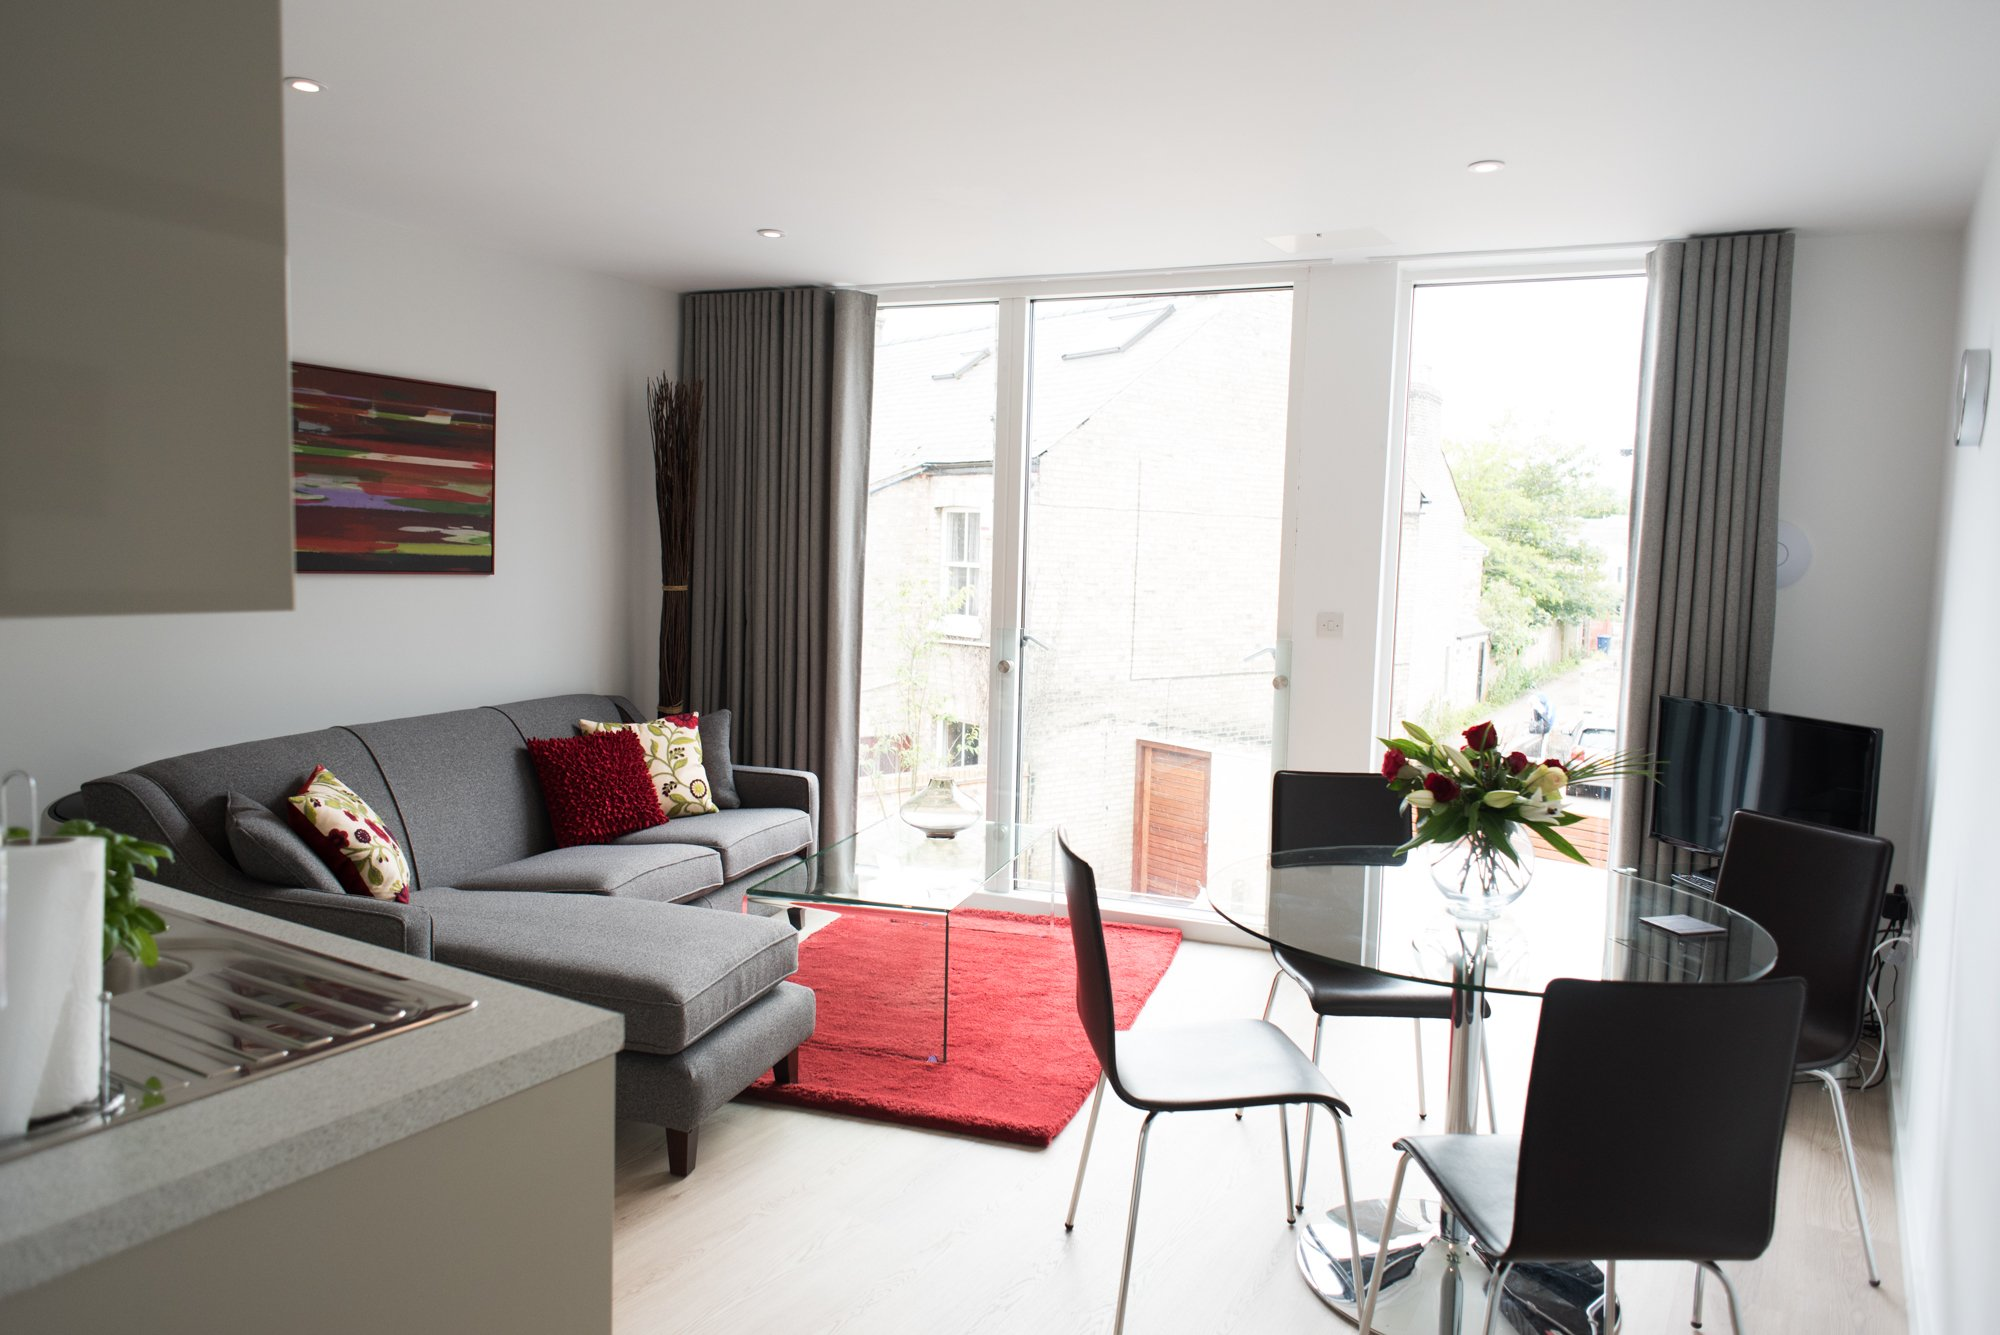 Looking-for-affordable-apartments-in-Cambridge?-why-not-book-our-Chesterton-Corporate-Apartments-at-Trafalgar-Road.-Call-today-for-great-rates.